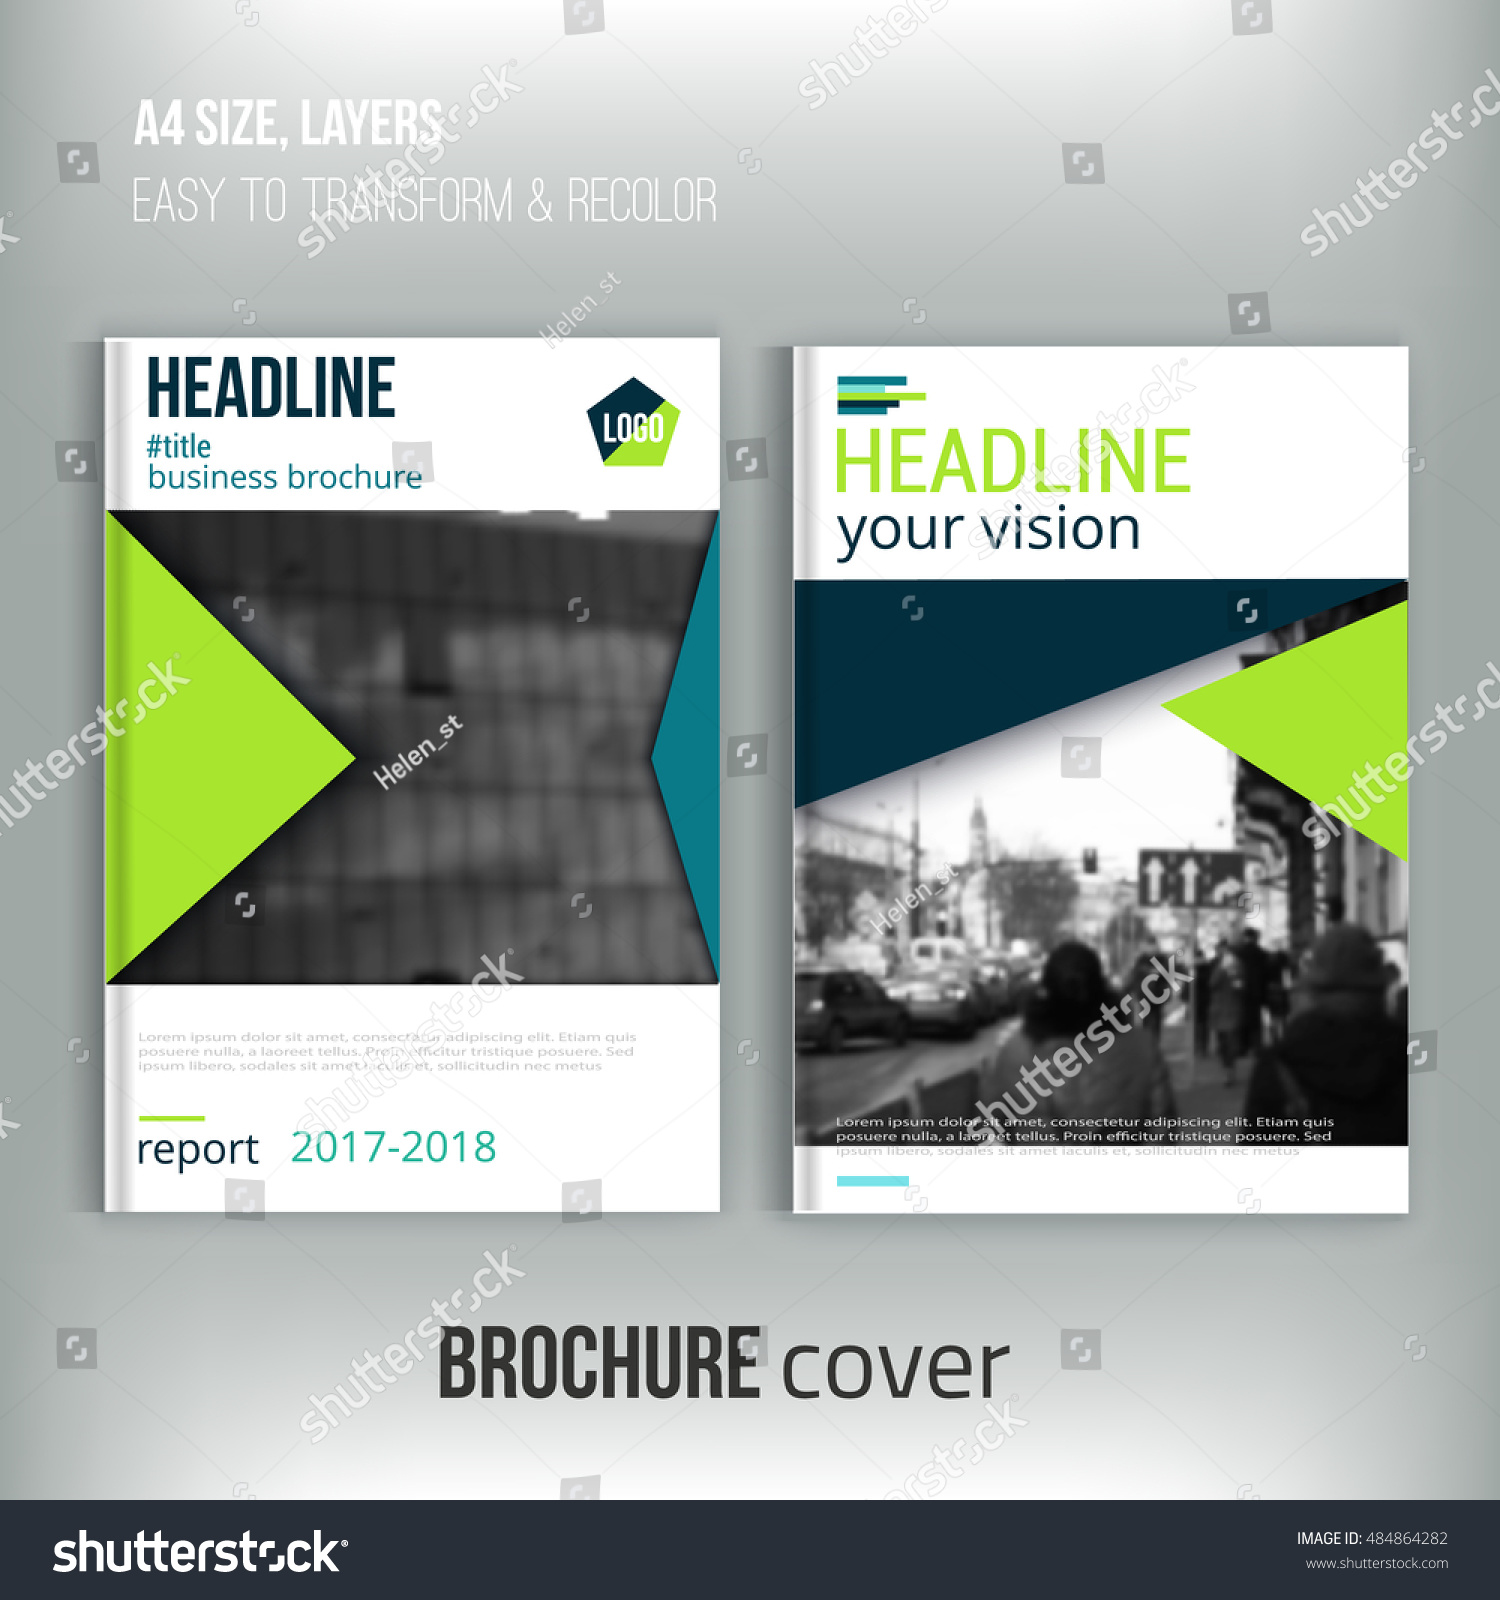 Clean Brochure Cover Template Blured City Stock Vector (Royalty Free ...